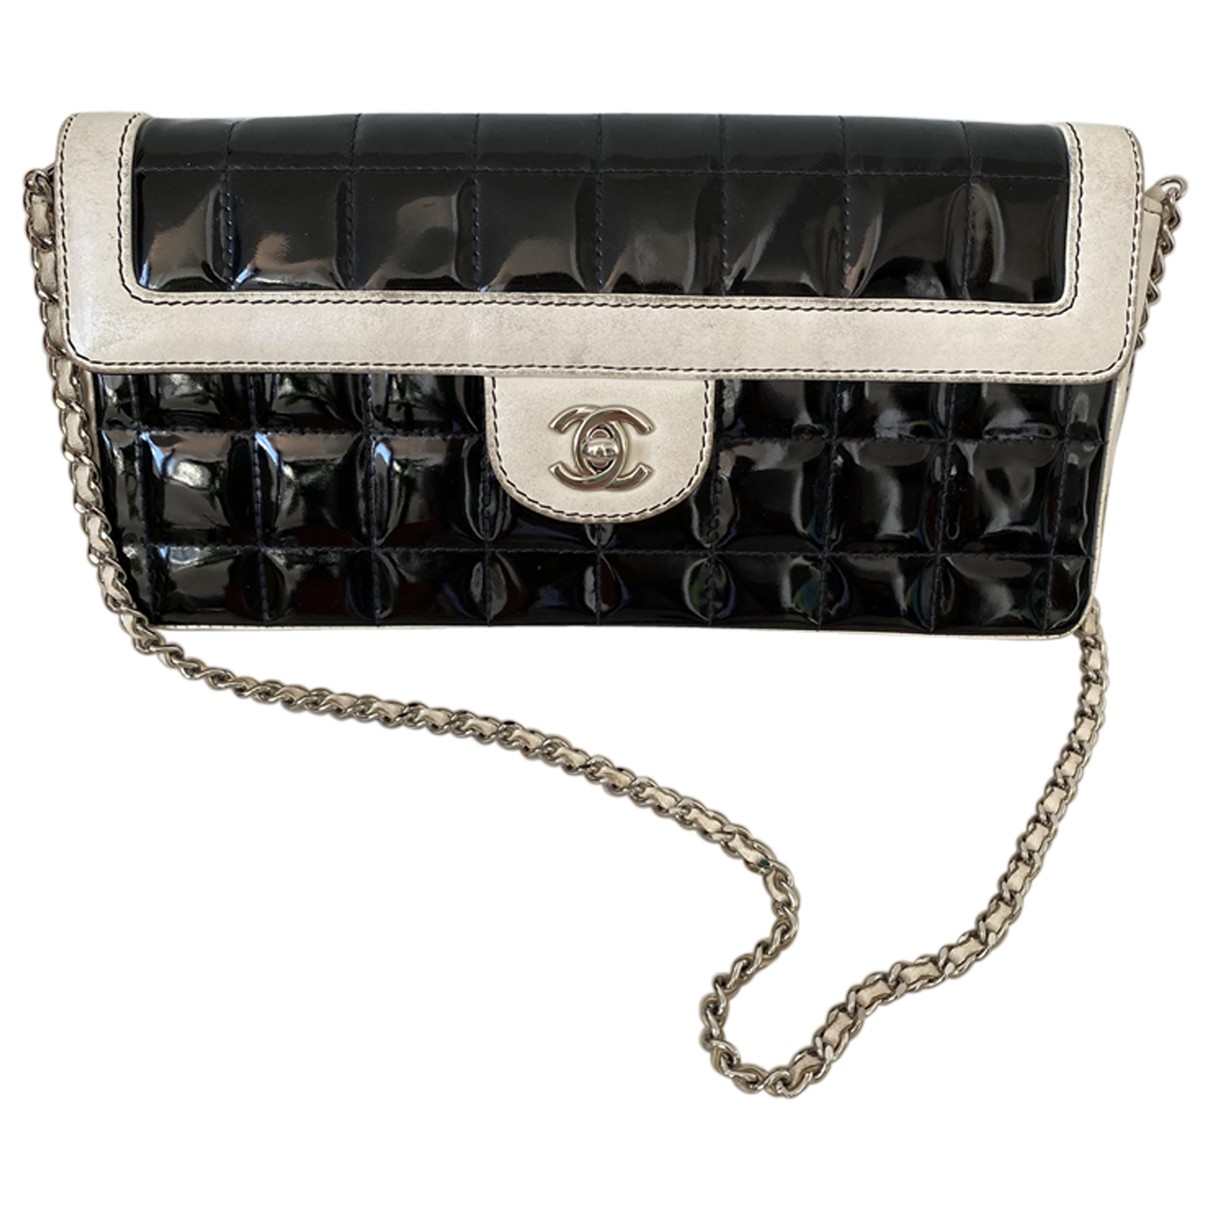 Chanel East West Chocolate Bar Black Patent leather handbag for Women \N